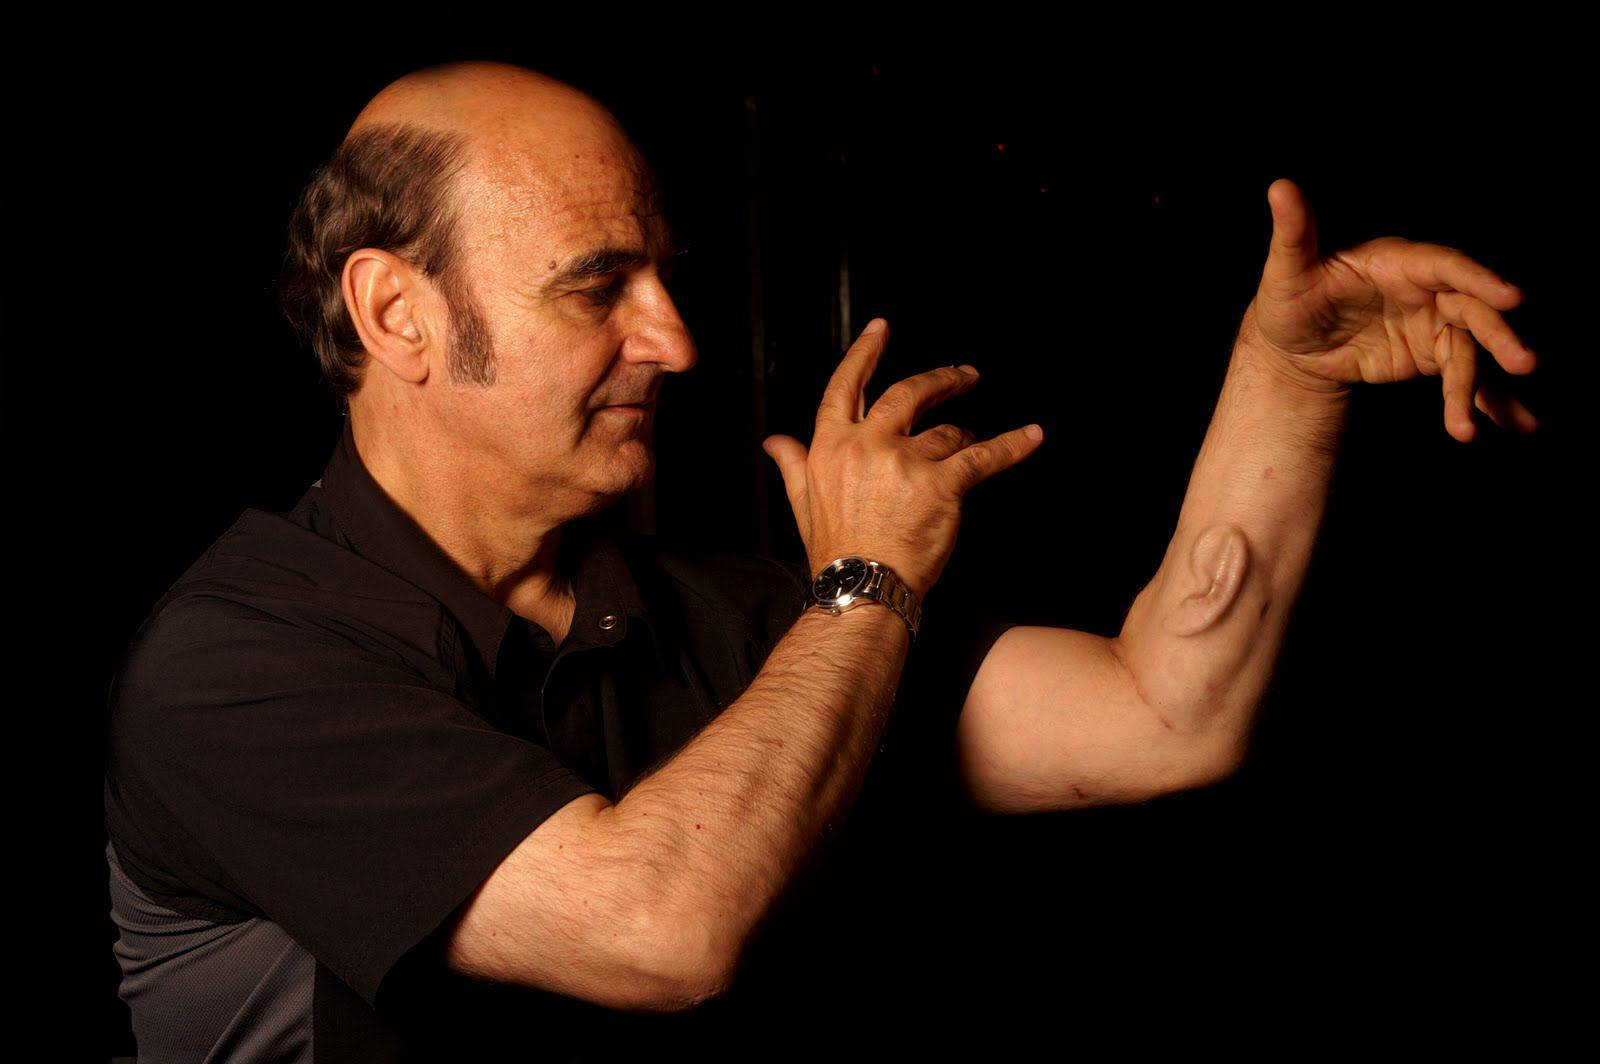 UNILAD stelarc6 Professor Grows Ear On His Arm That Connects To The Internet, Yep